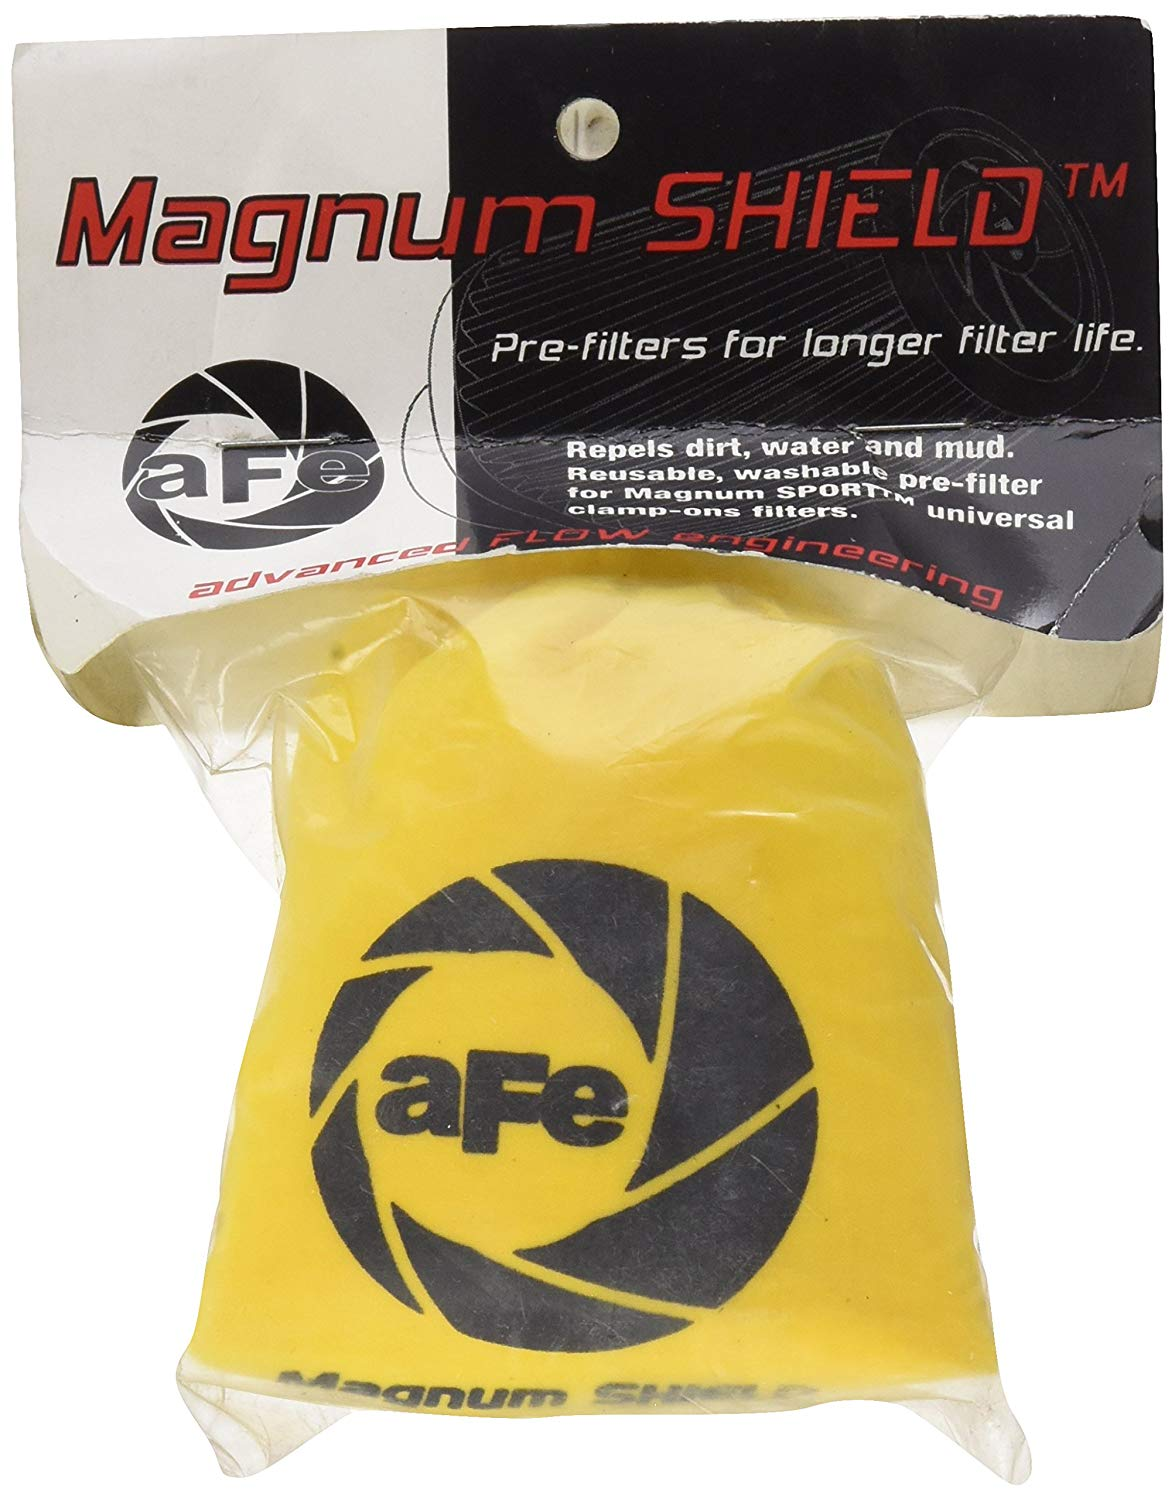 aFe Magnum SHIELD Pre-Filter For 10-20013 / 18-11405 - Yellow